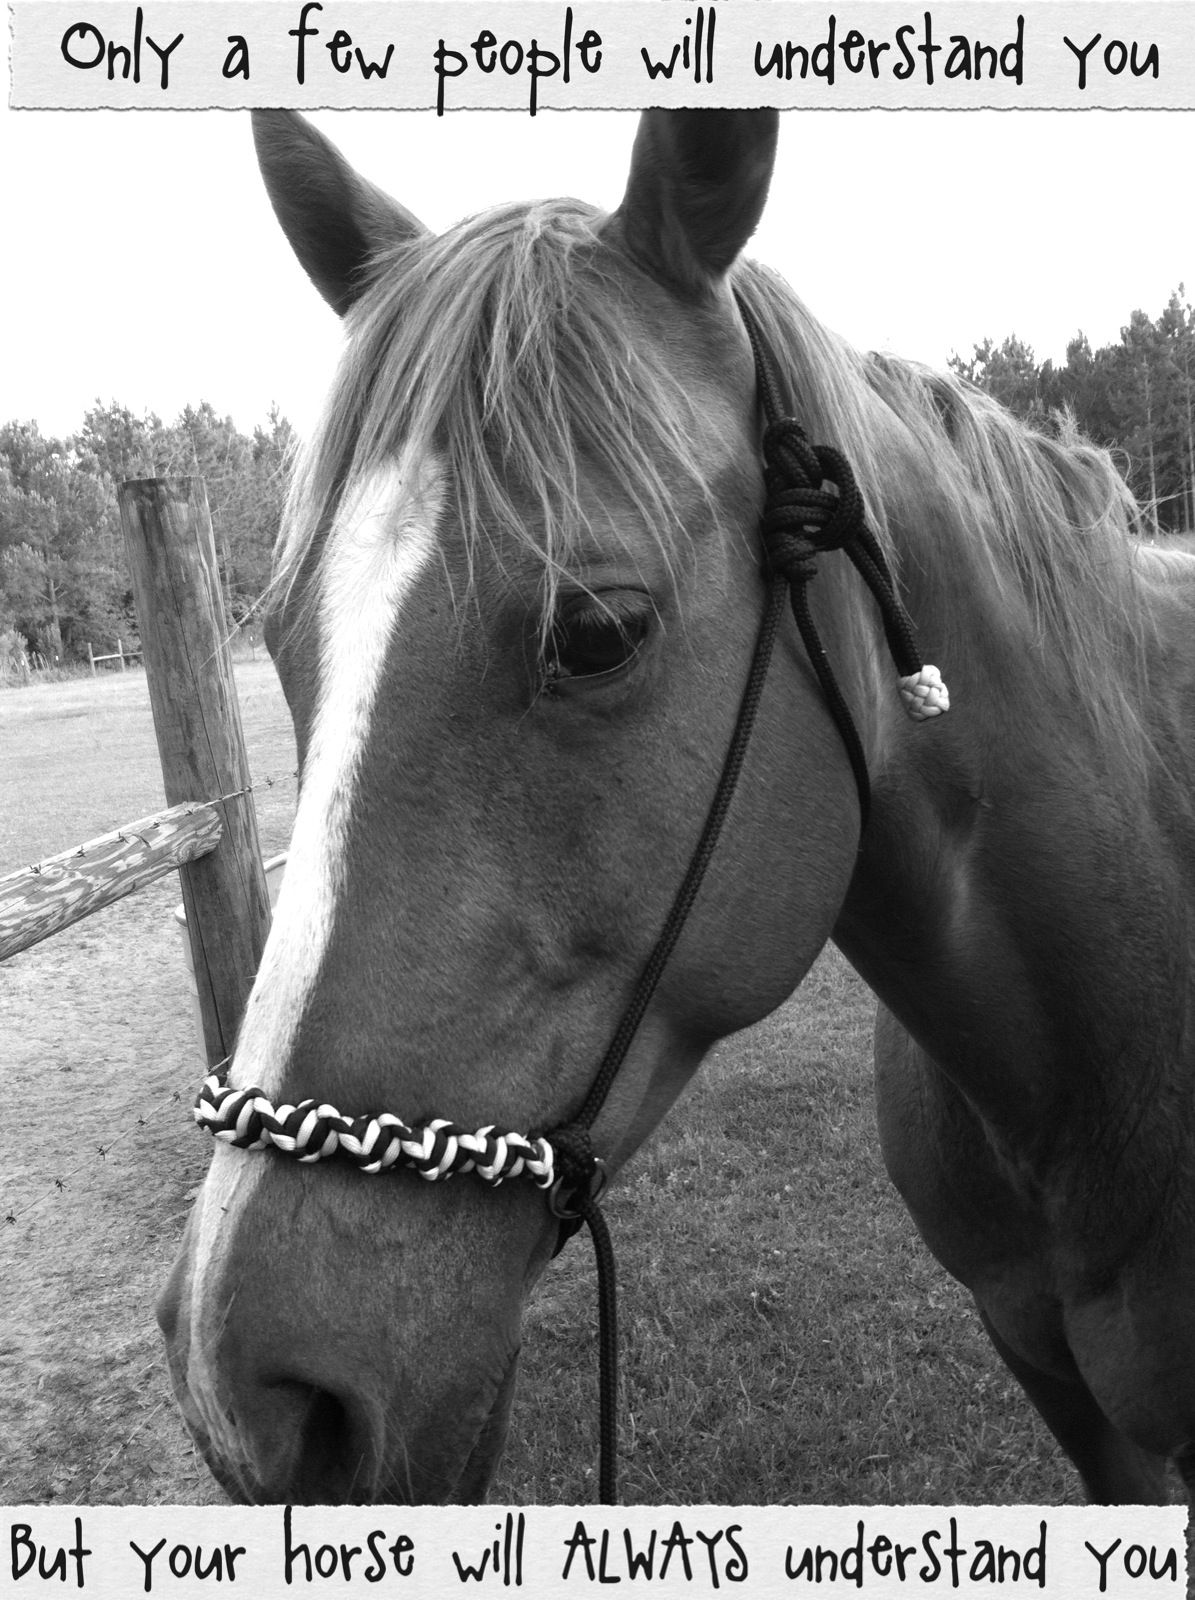 Horse quotes | Quotes and sayings | Pinterest | Horse ...